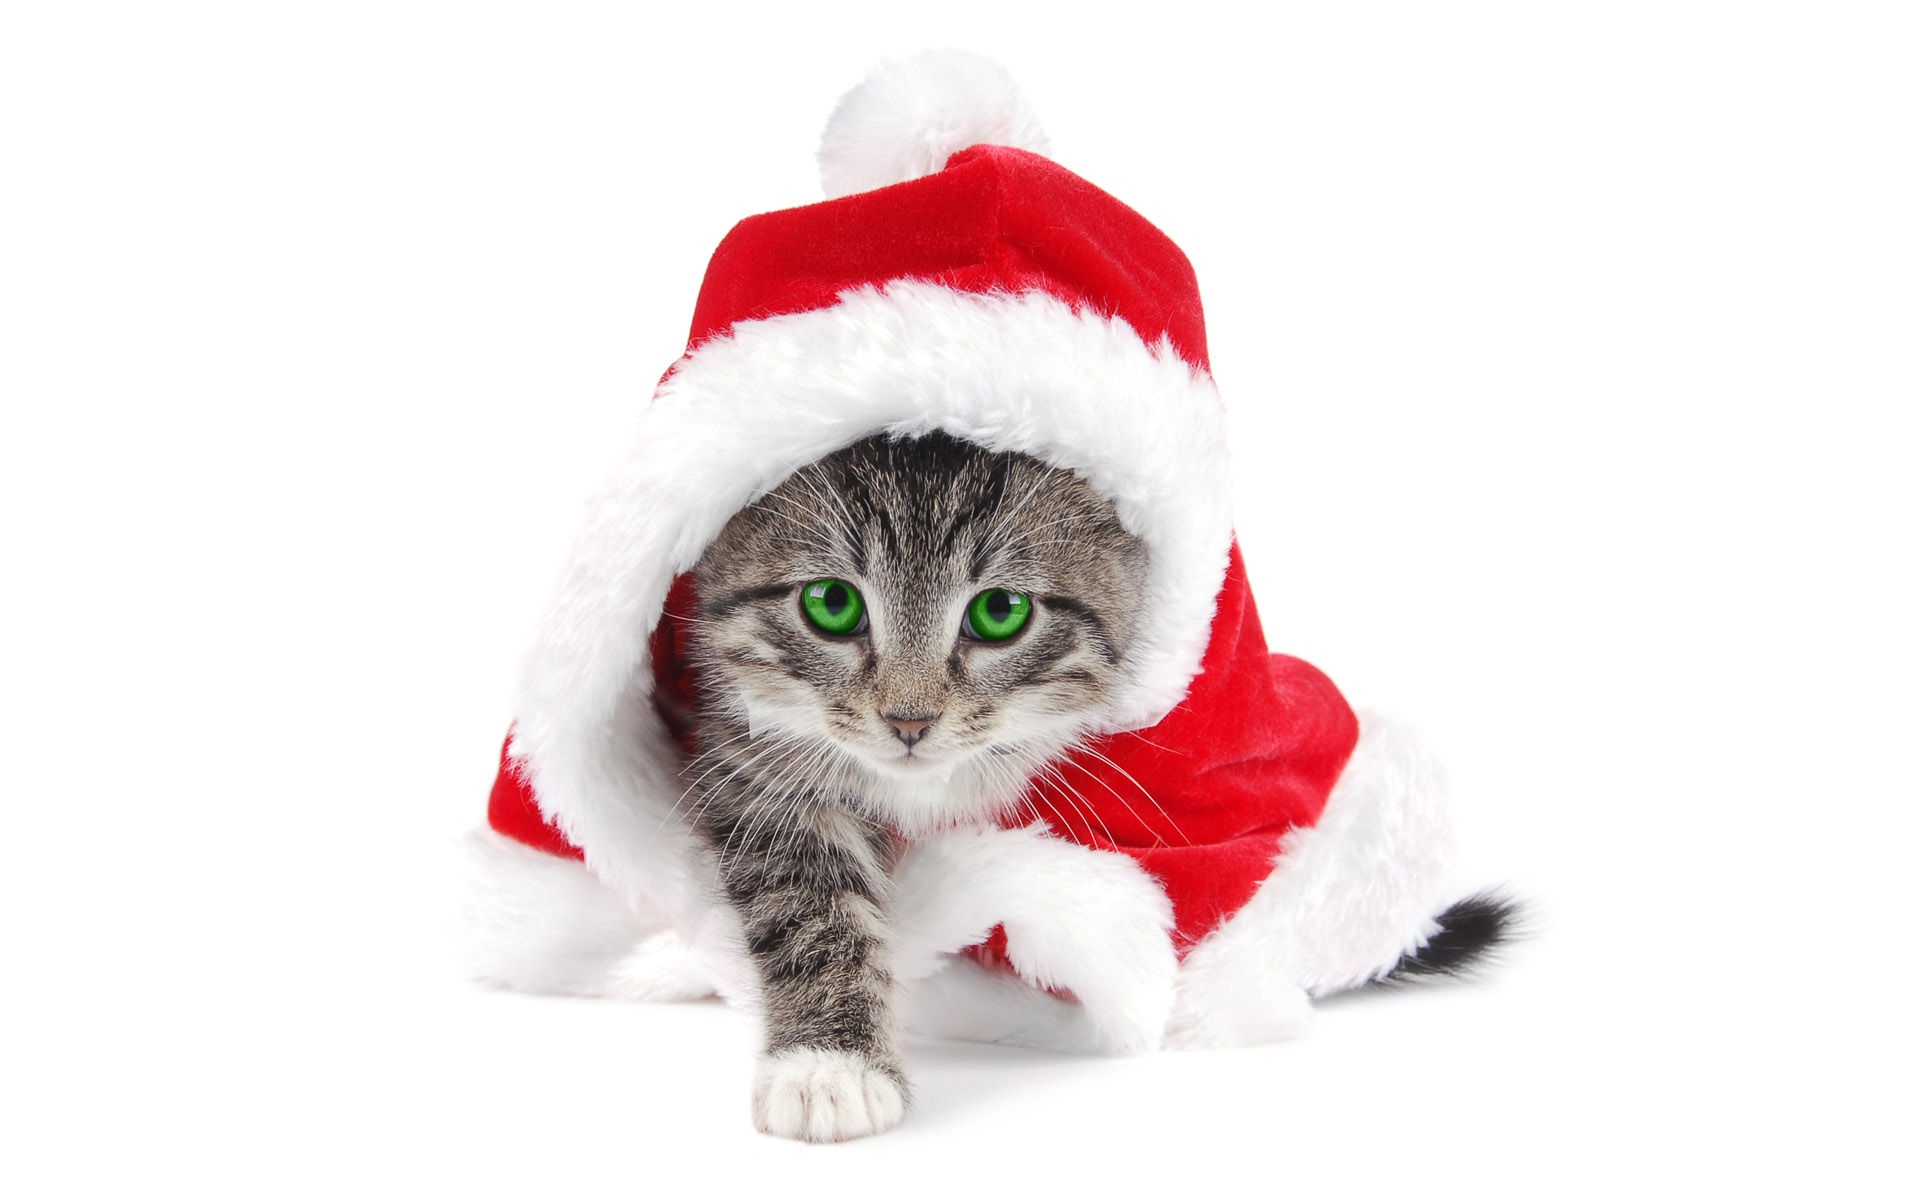 Funny Cat Picture Thread! - Page 2 Wallpaper_of_a_naught_cat_wearing_the_clothes_of_Santa_Claus